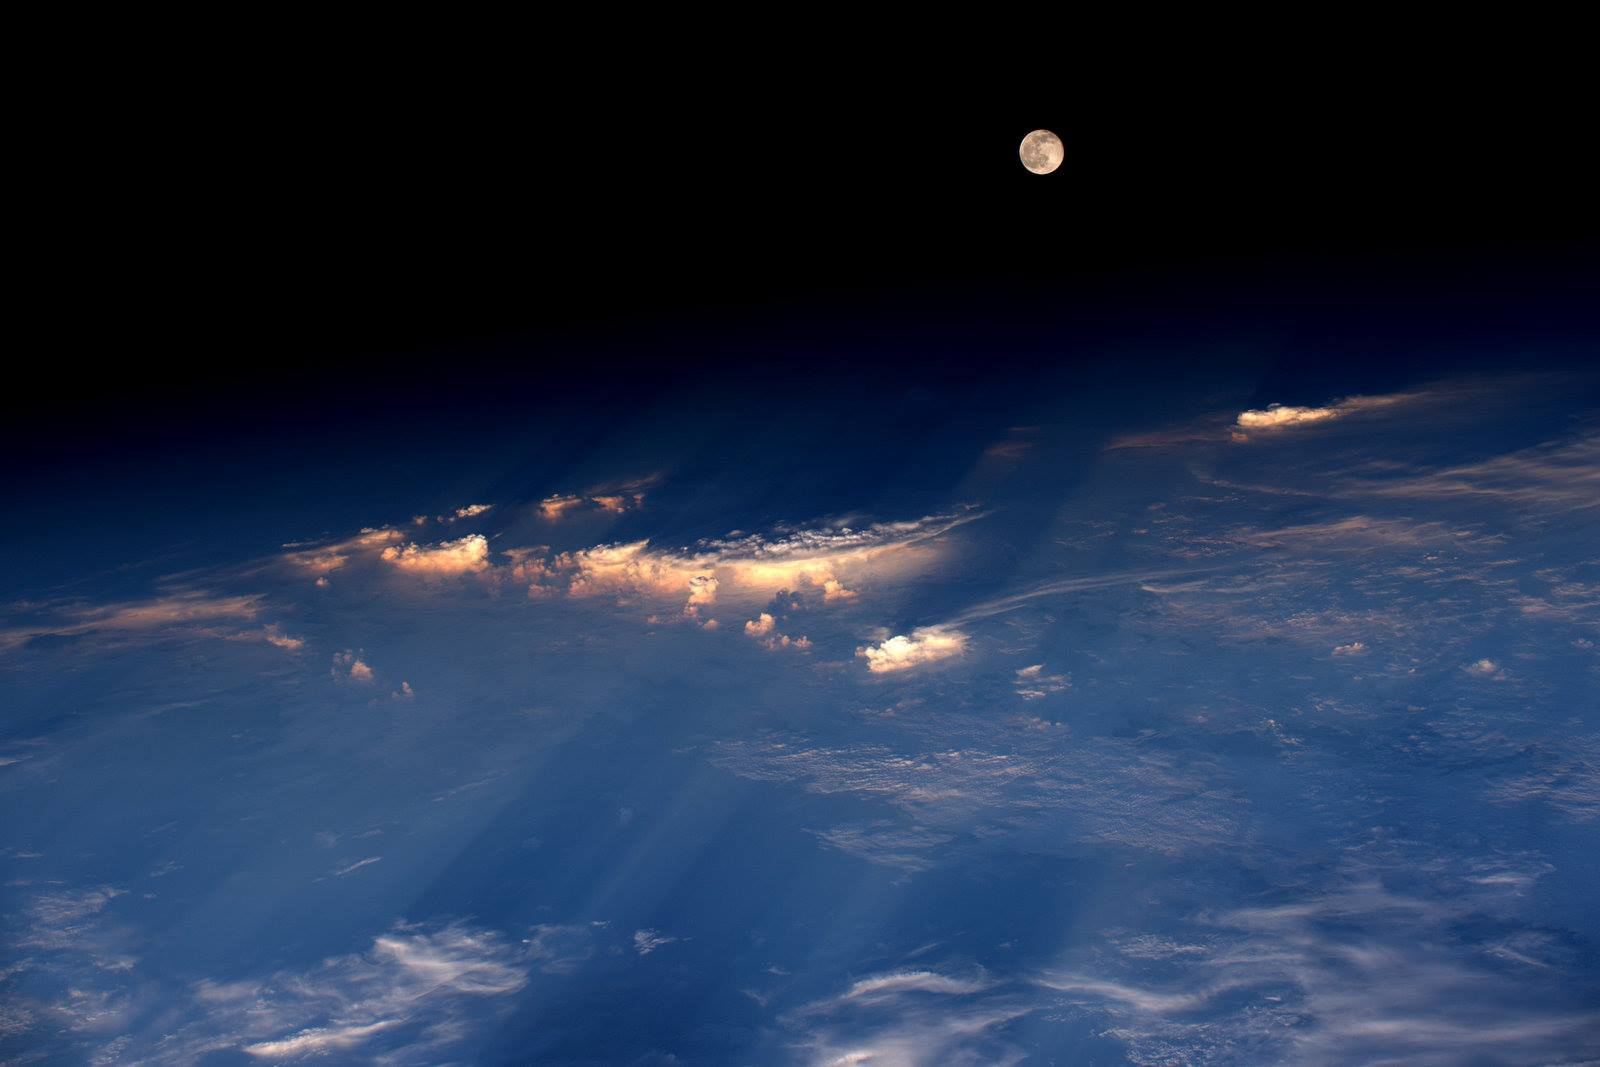 The full moon, photographed on June 20, 2016, from the International Space Station by astronaut Jeff Williams. According to Williams, the shot was taken while the station was flying over western China.